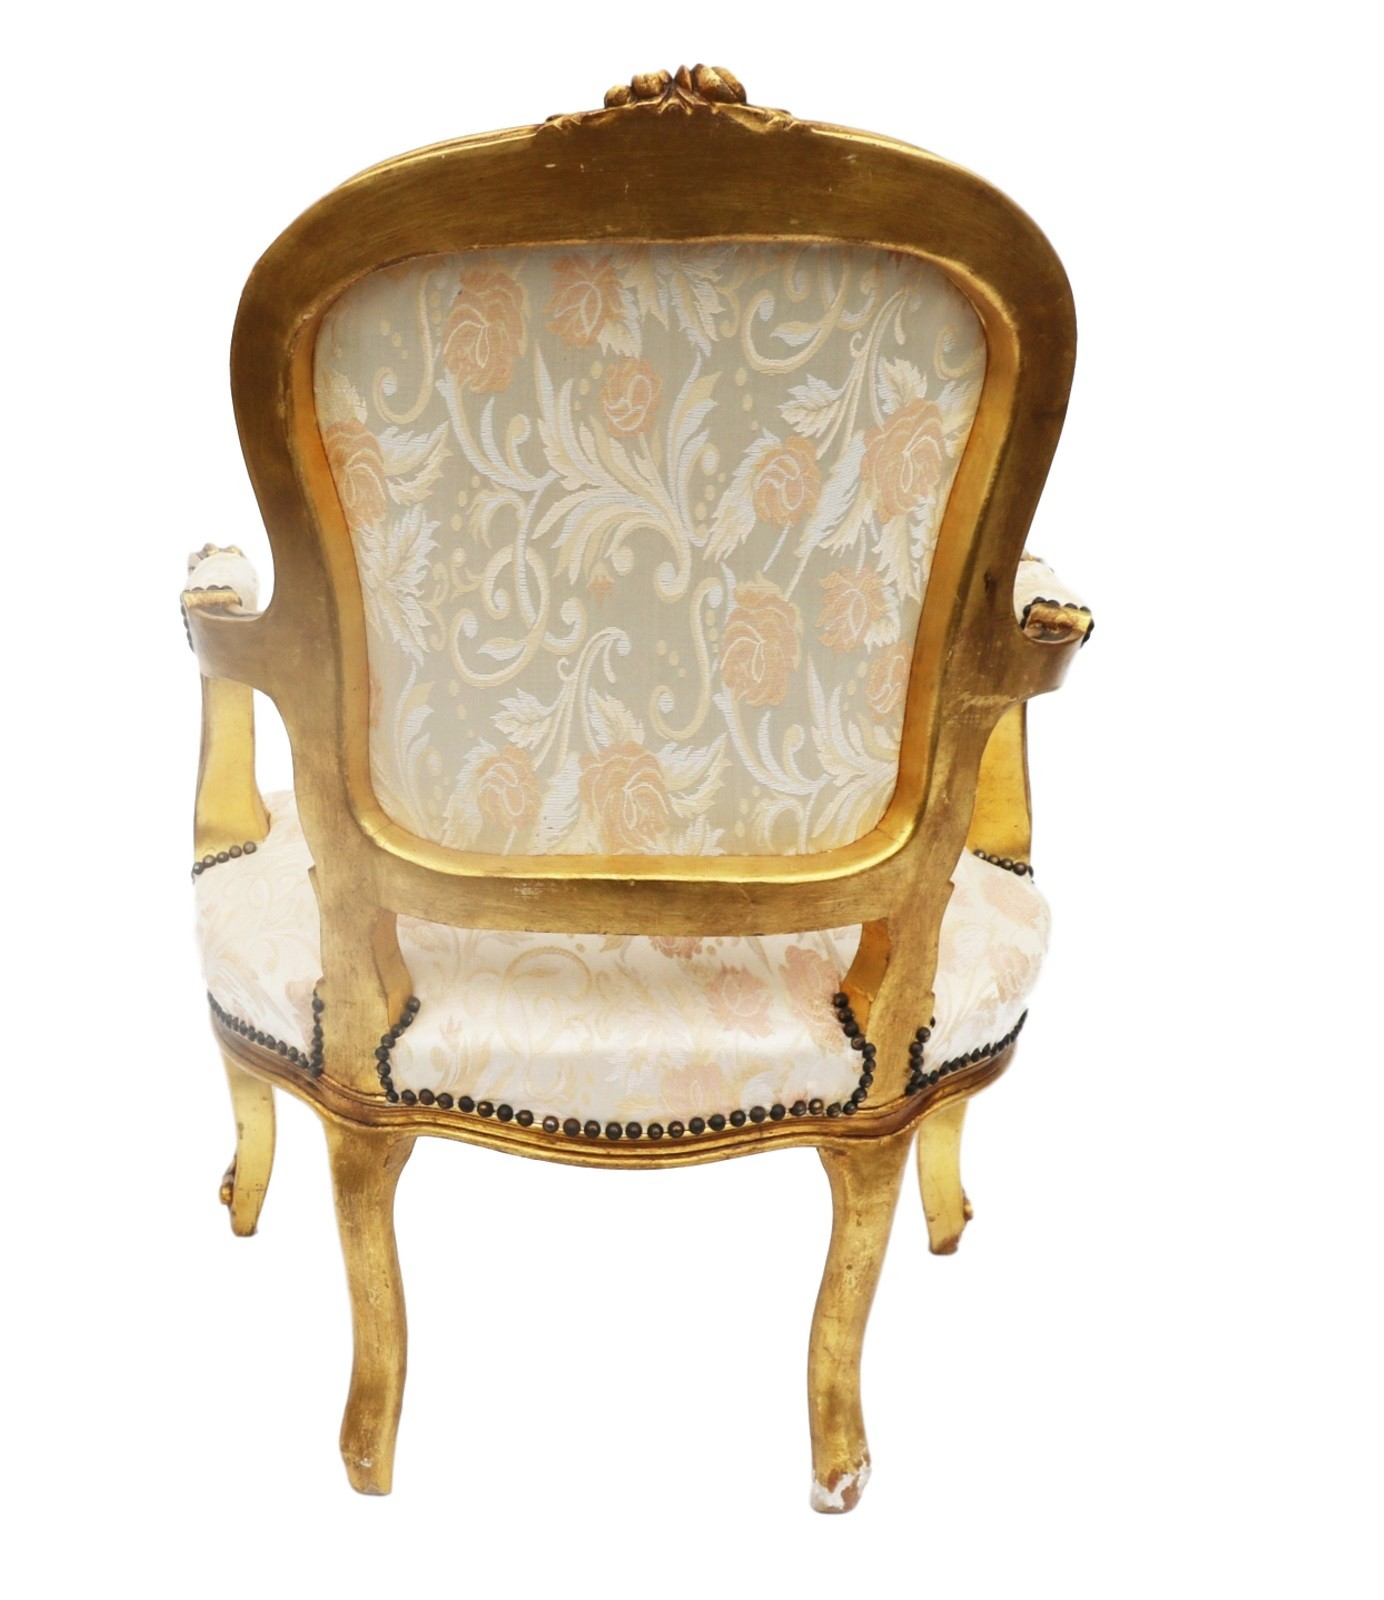 Antique upholstered chair styles - French Louis Xv Style Carved Gilt Wood Fauteuil Arm Chair 20th Century